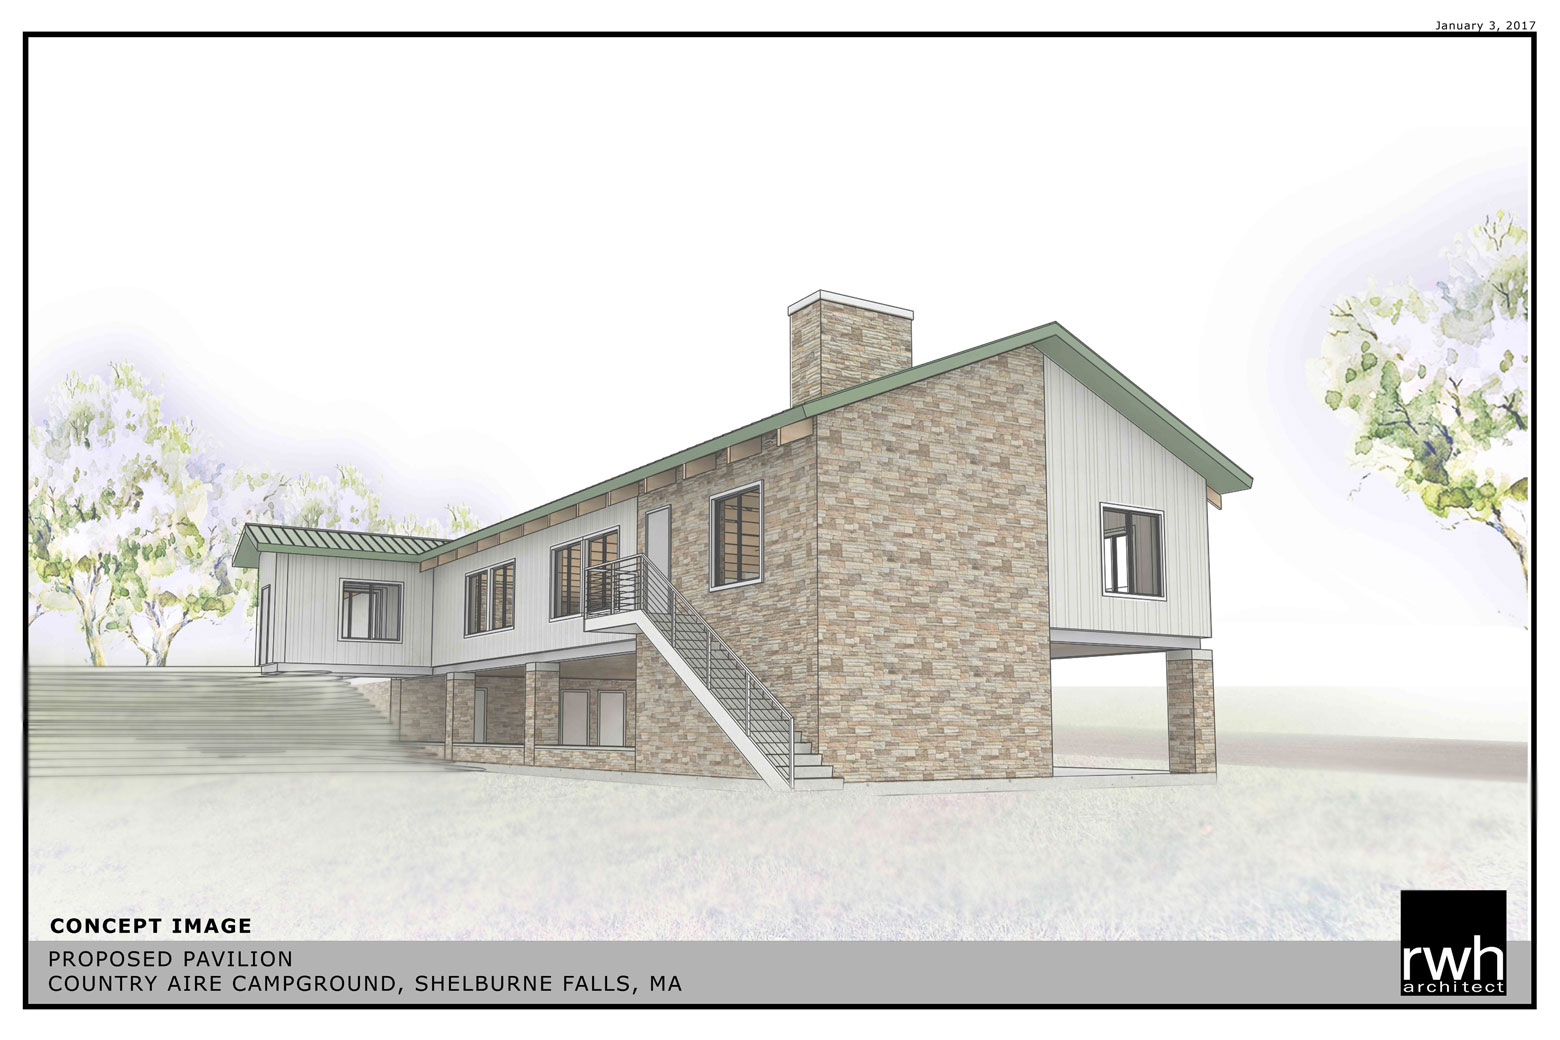 Country Aire Campground Pavilion_Shelburne Falls, MA_ RWH Architect_Salem NH_2.jpg